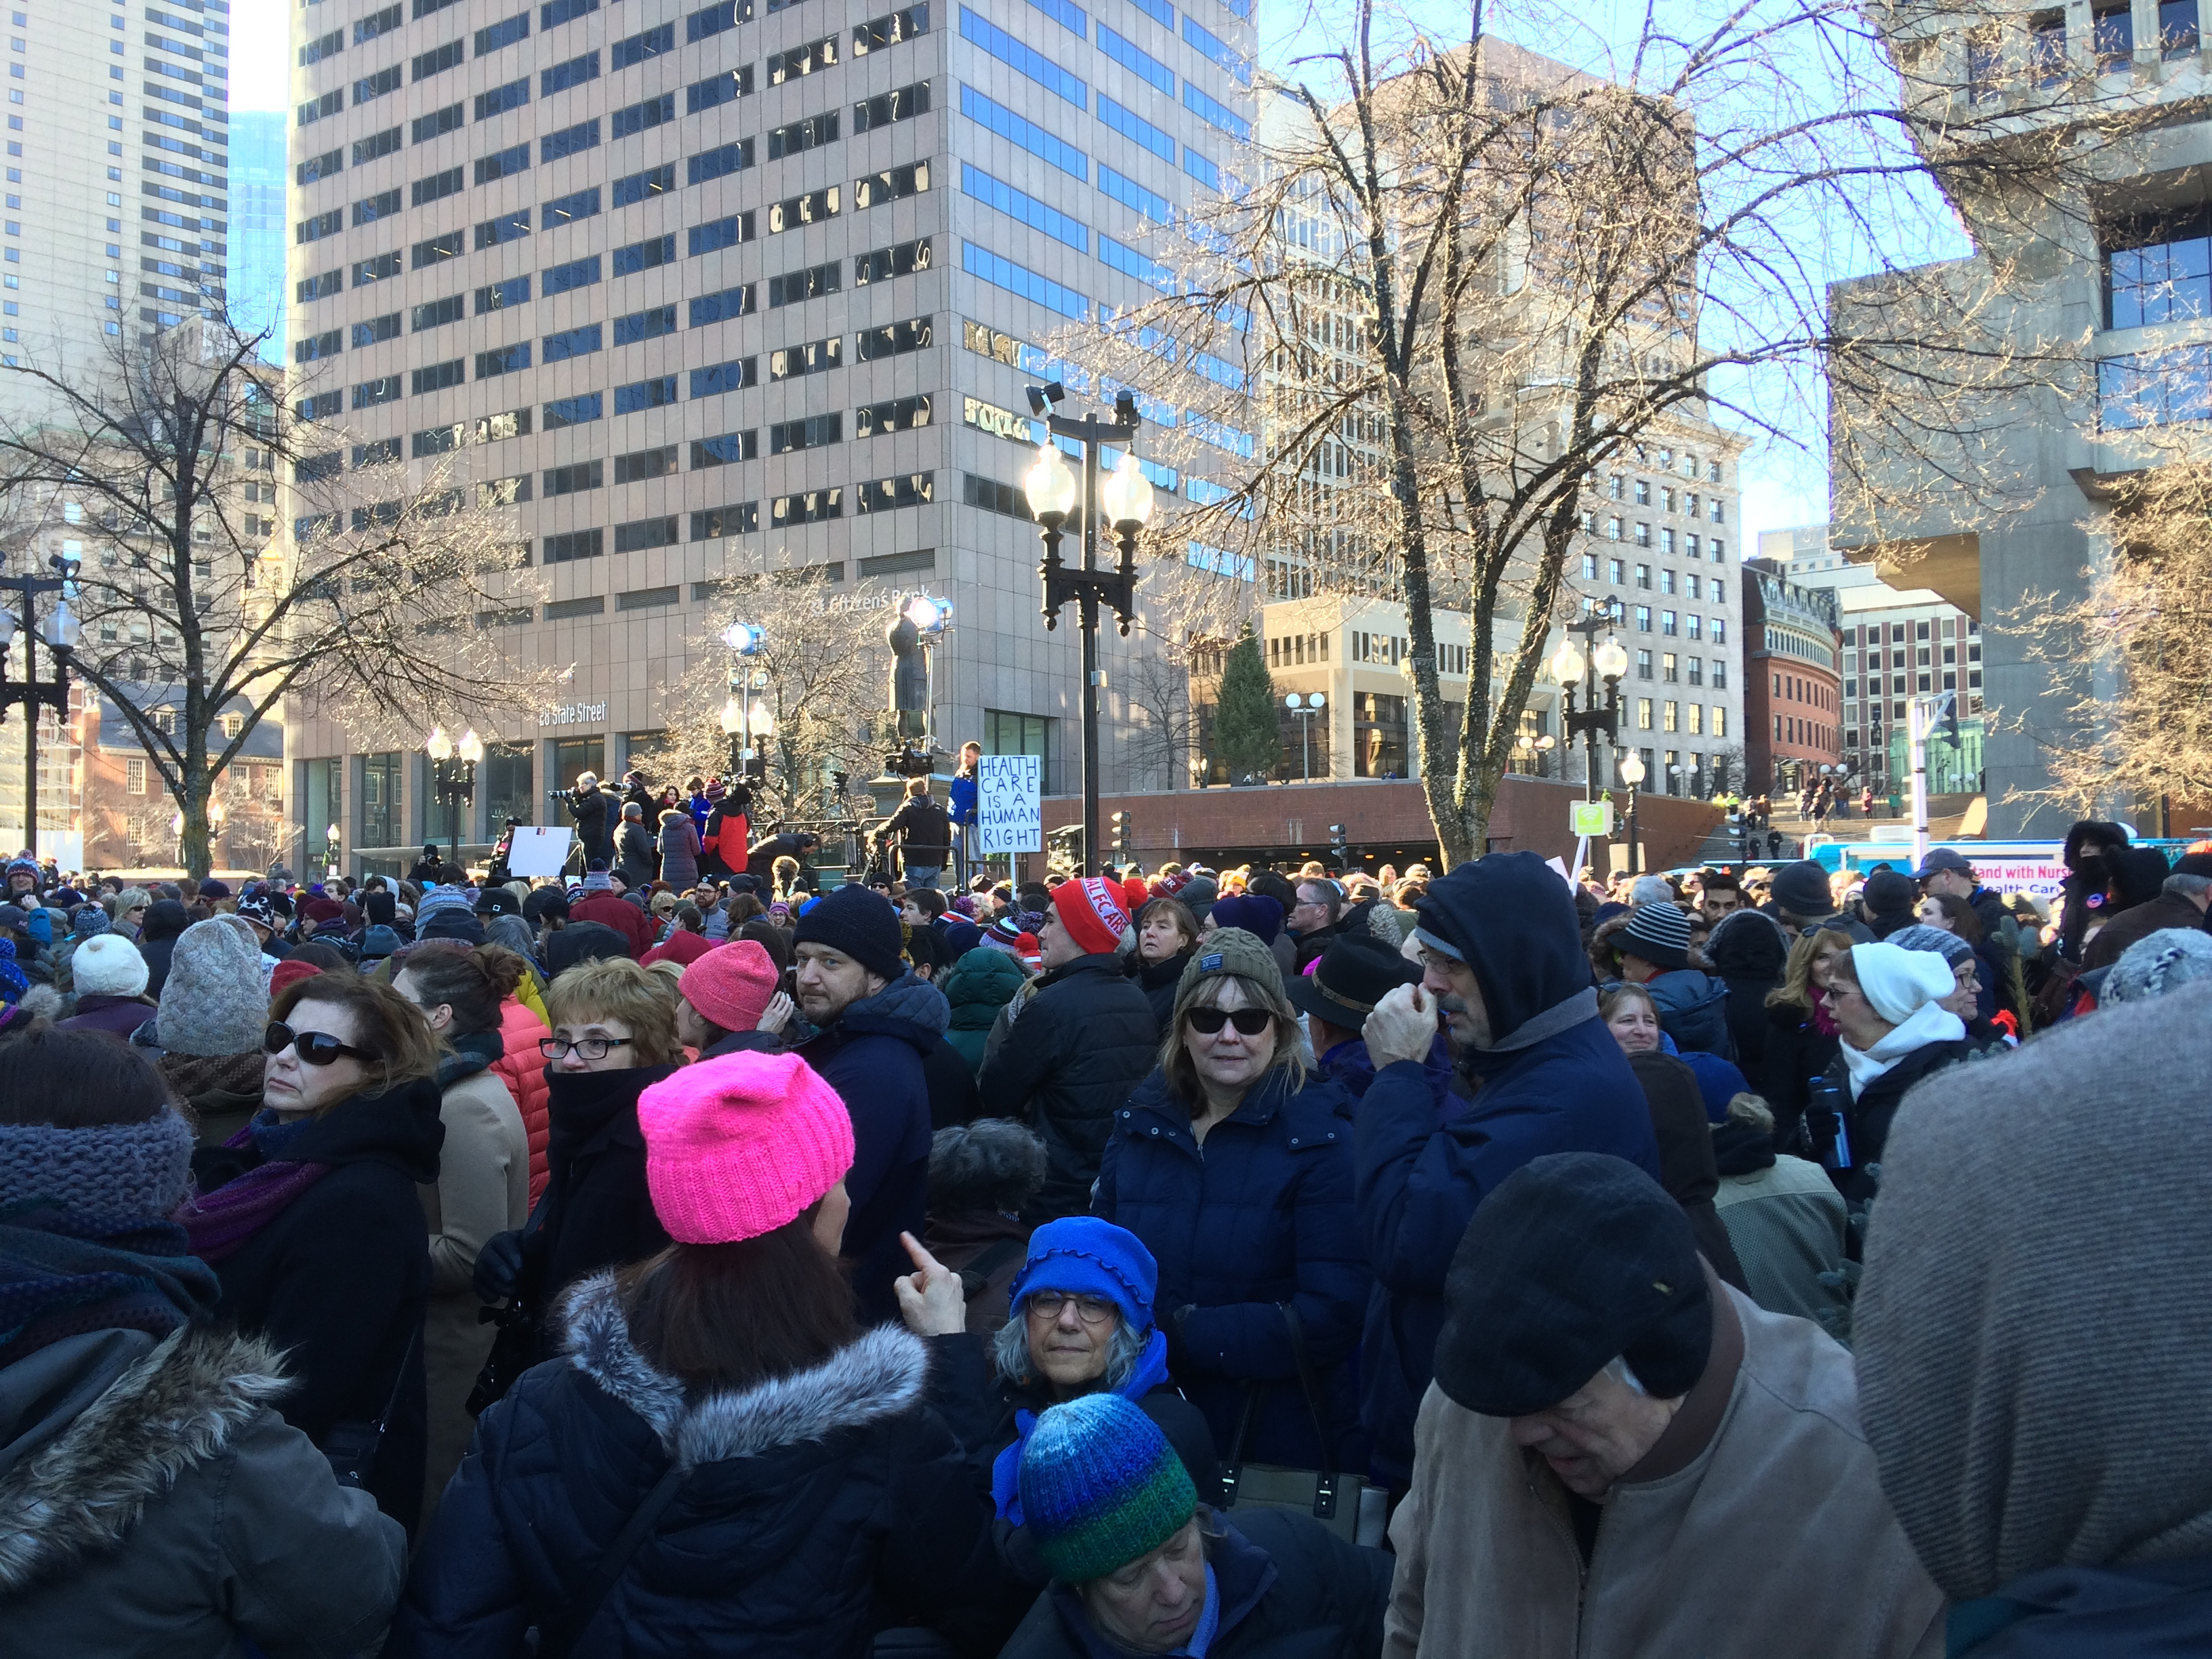 View of crowd at Boston healthcare rally January 15, 2017